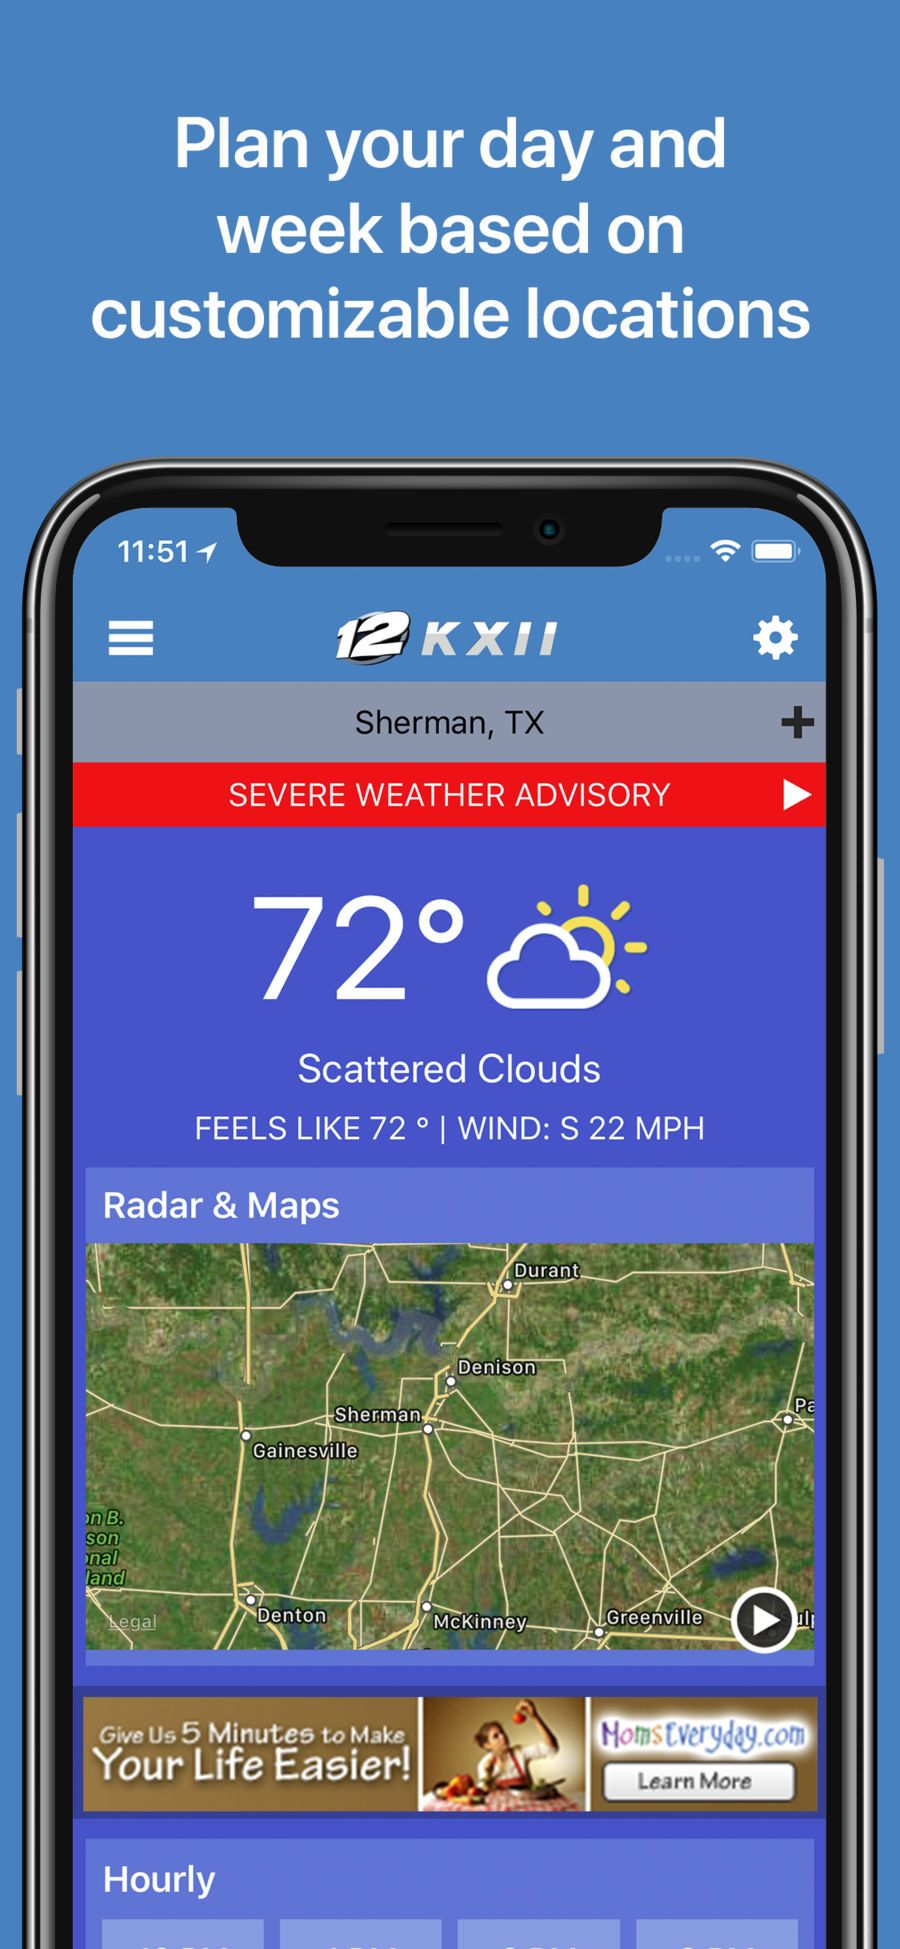 Kxii News Weather Group Apps Ios Severe Weather Weather Advisory Apples To Apples Game